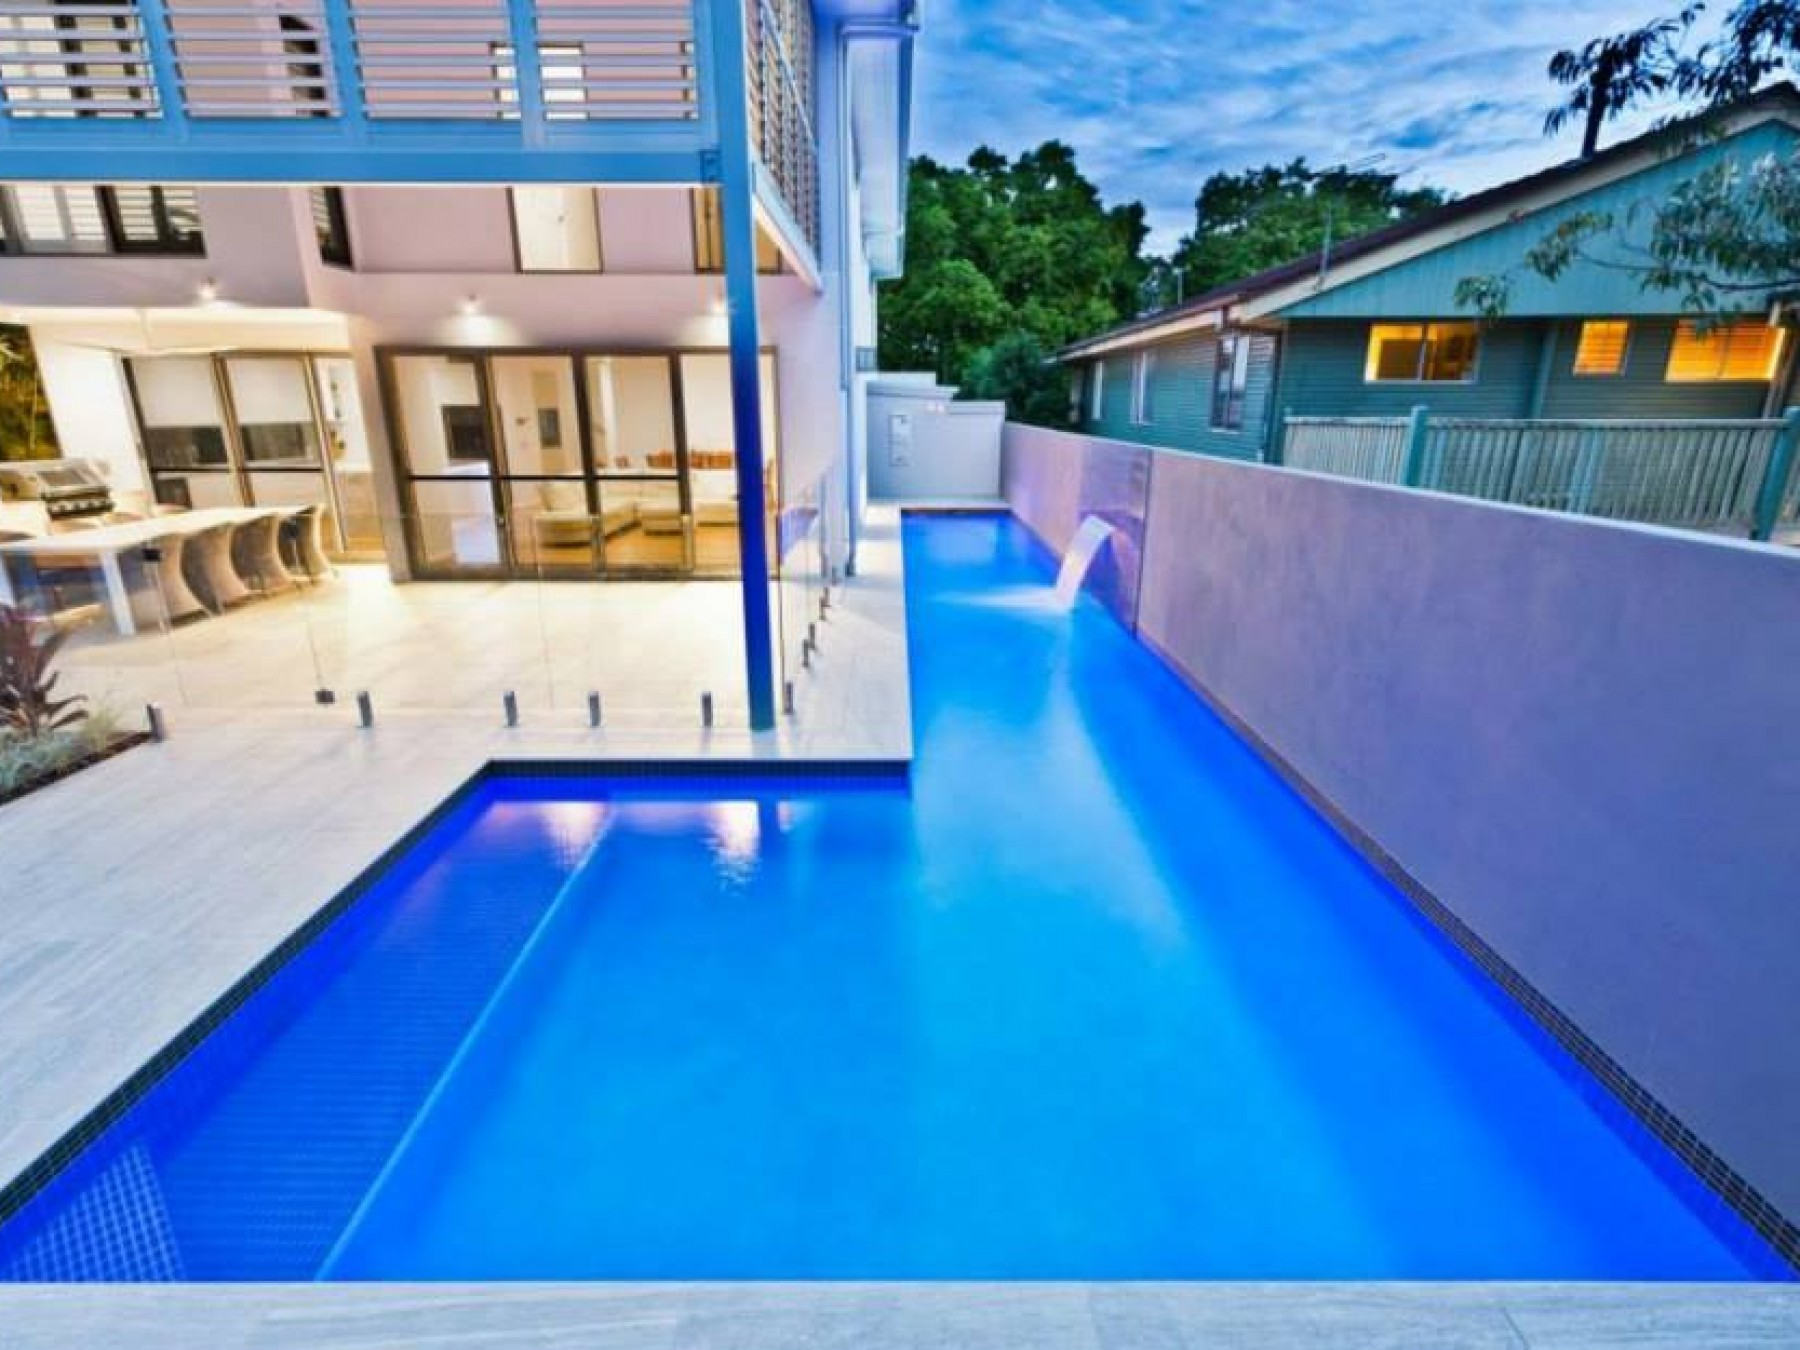 Selling or Leasing a pool in Coorparoo